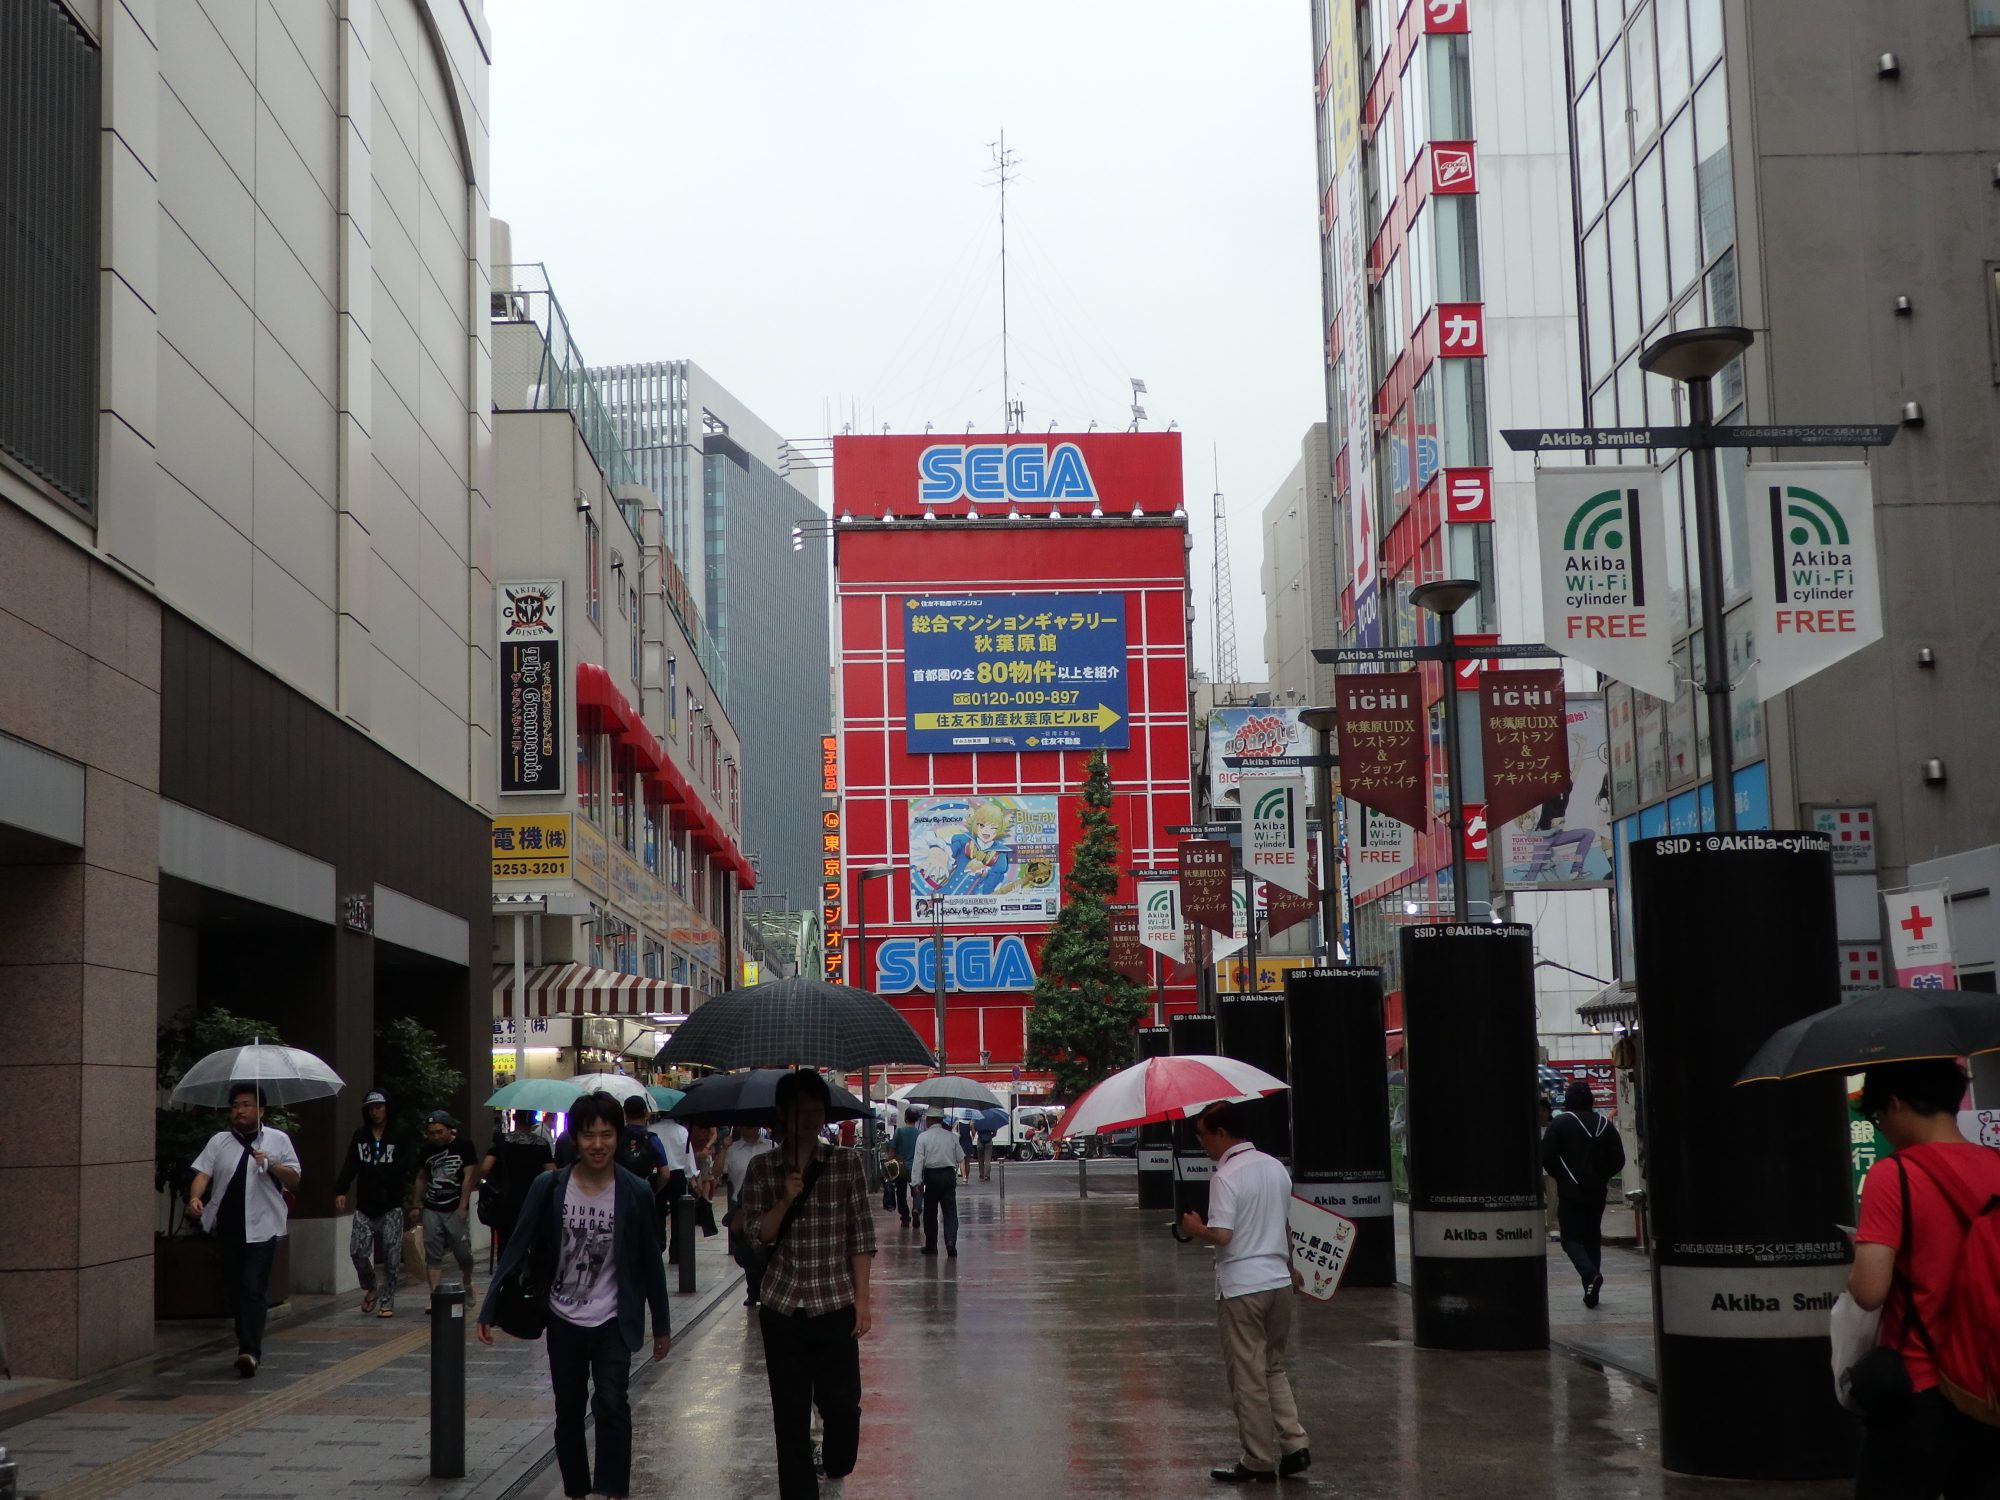 another street view in Akihabara, Tokyo